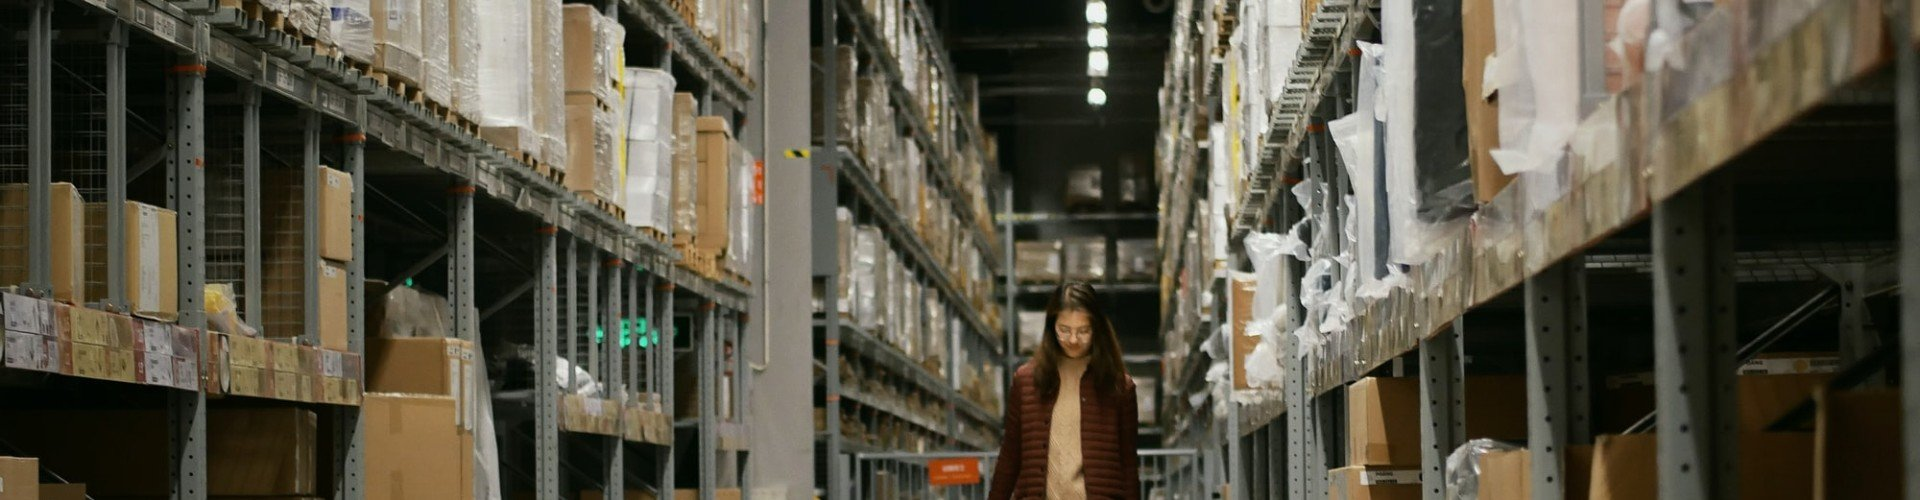 Warehouse Cover Letter Examples for Workers and Associates